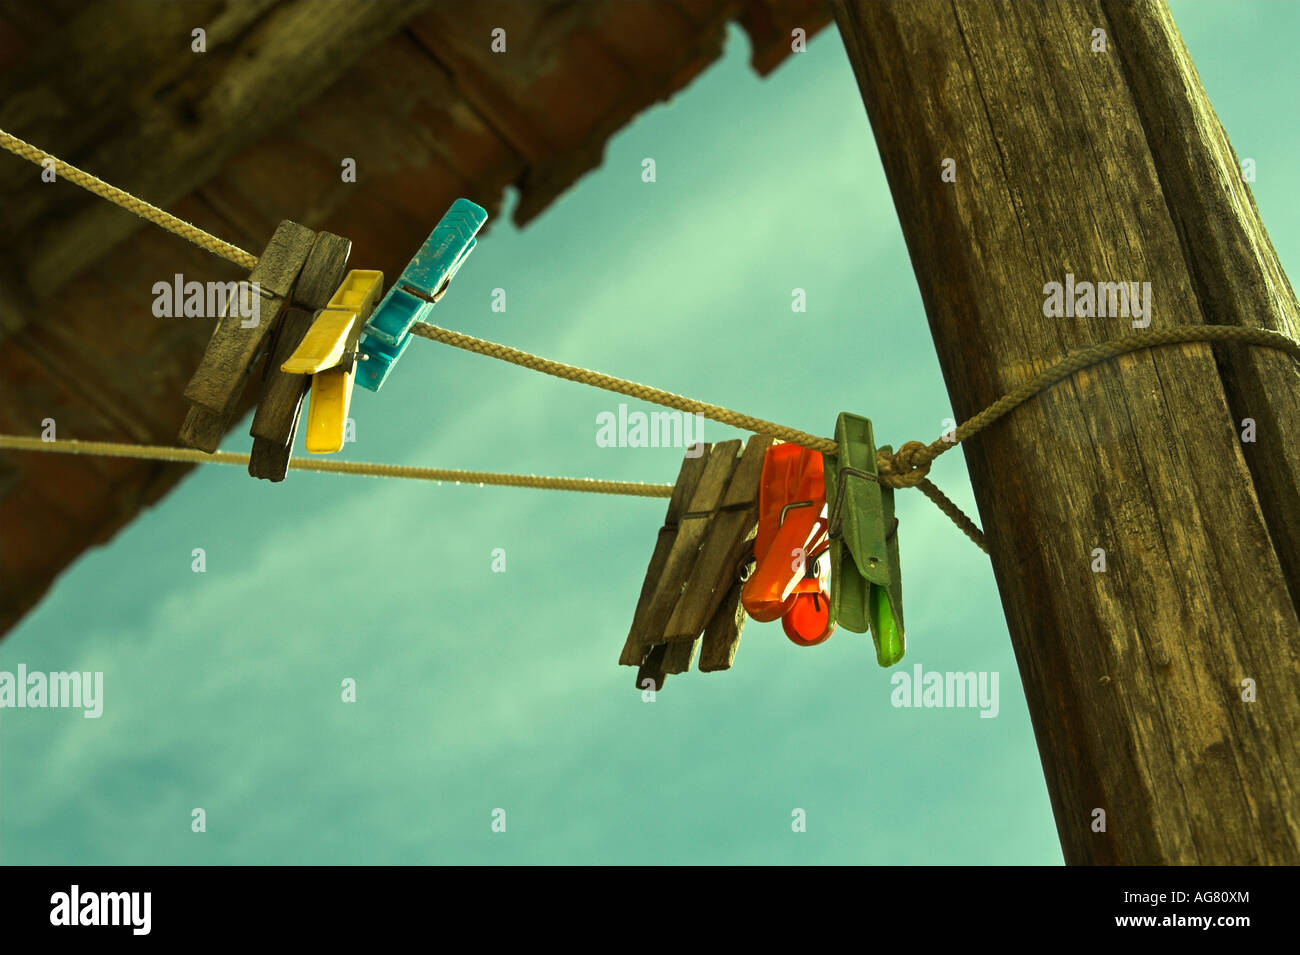 Clothes pegs on washing line - Stock Image